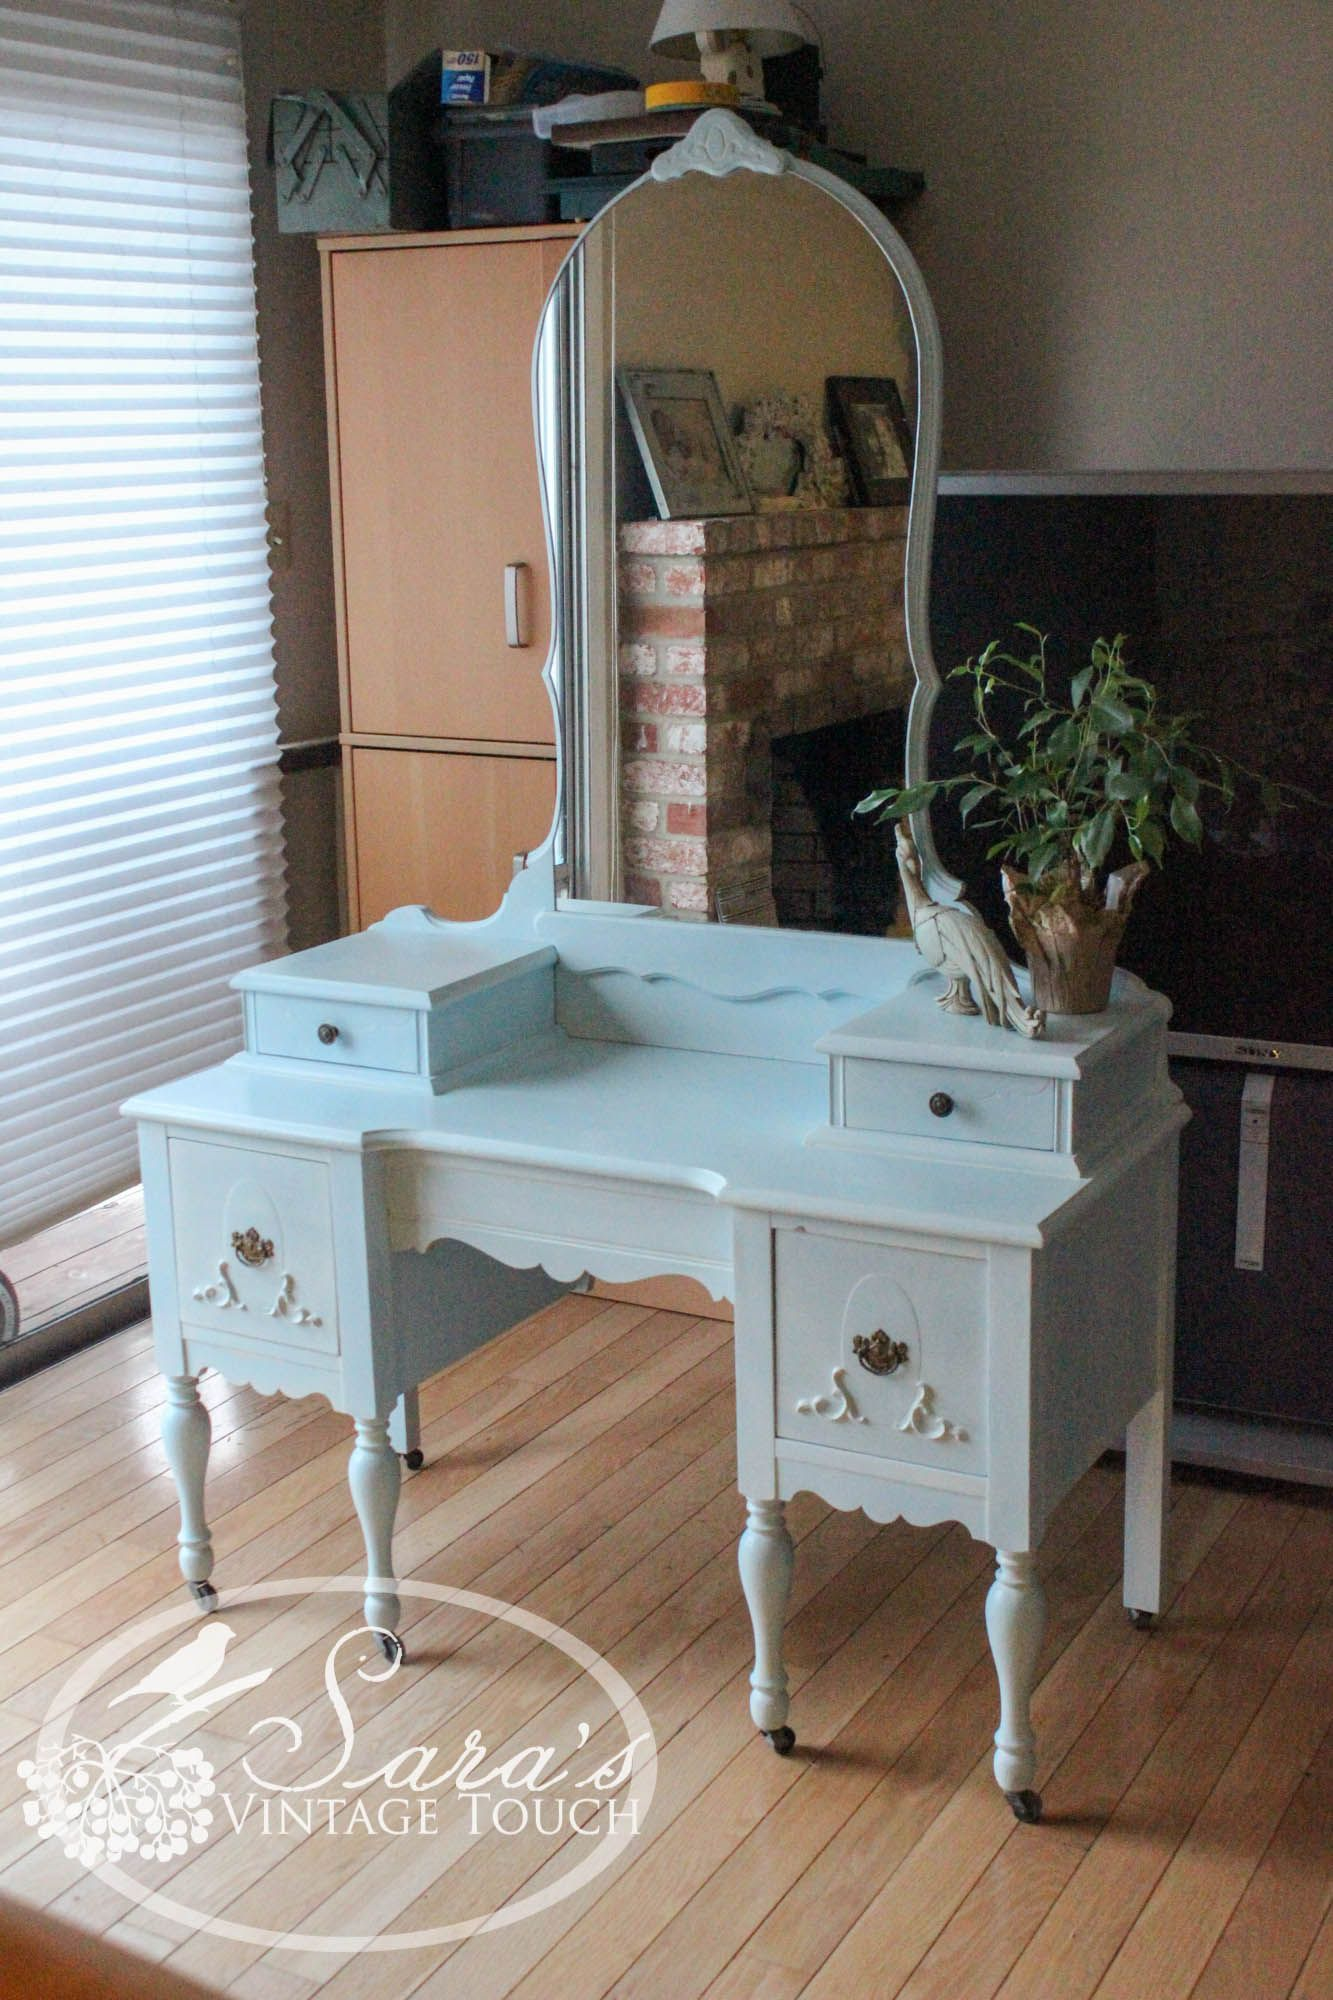 Antique makeup vanity / dressing table. Refinished in Maison Blanche's  chalk paint by Sara's Vintage - Pin By Becky Schneider On Vainity, Vanity Antique Makeup Vanities